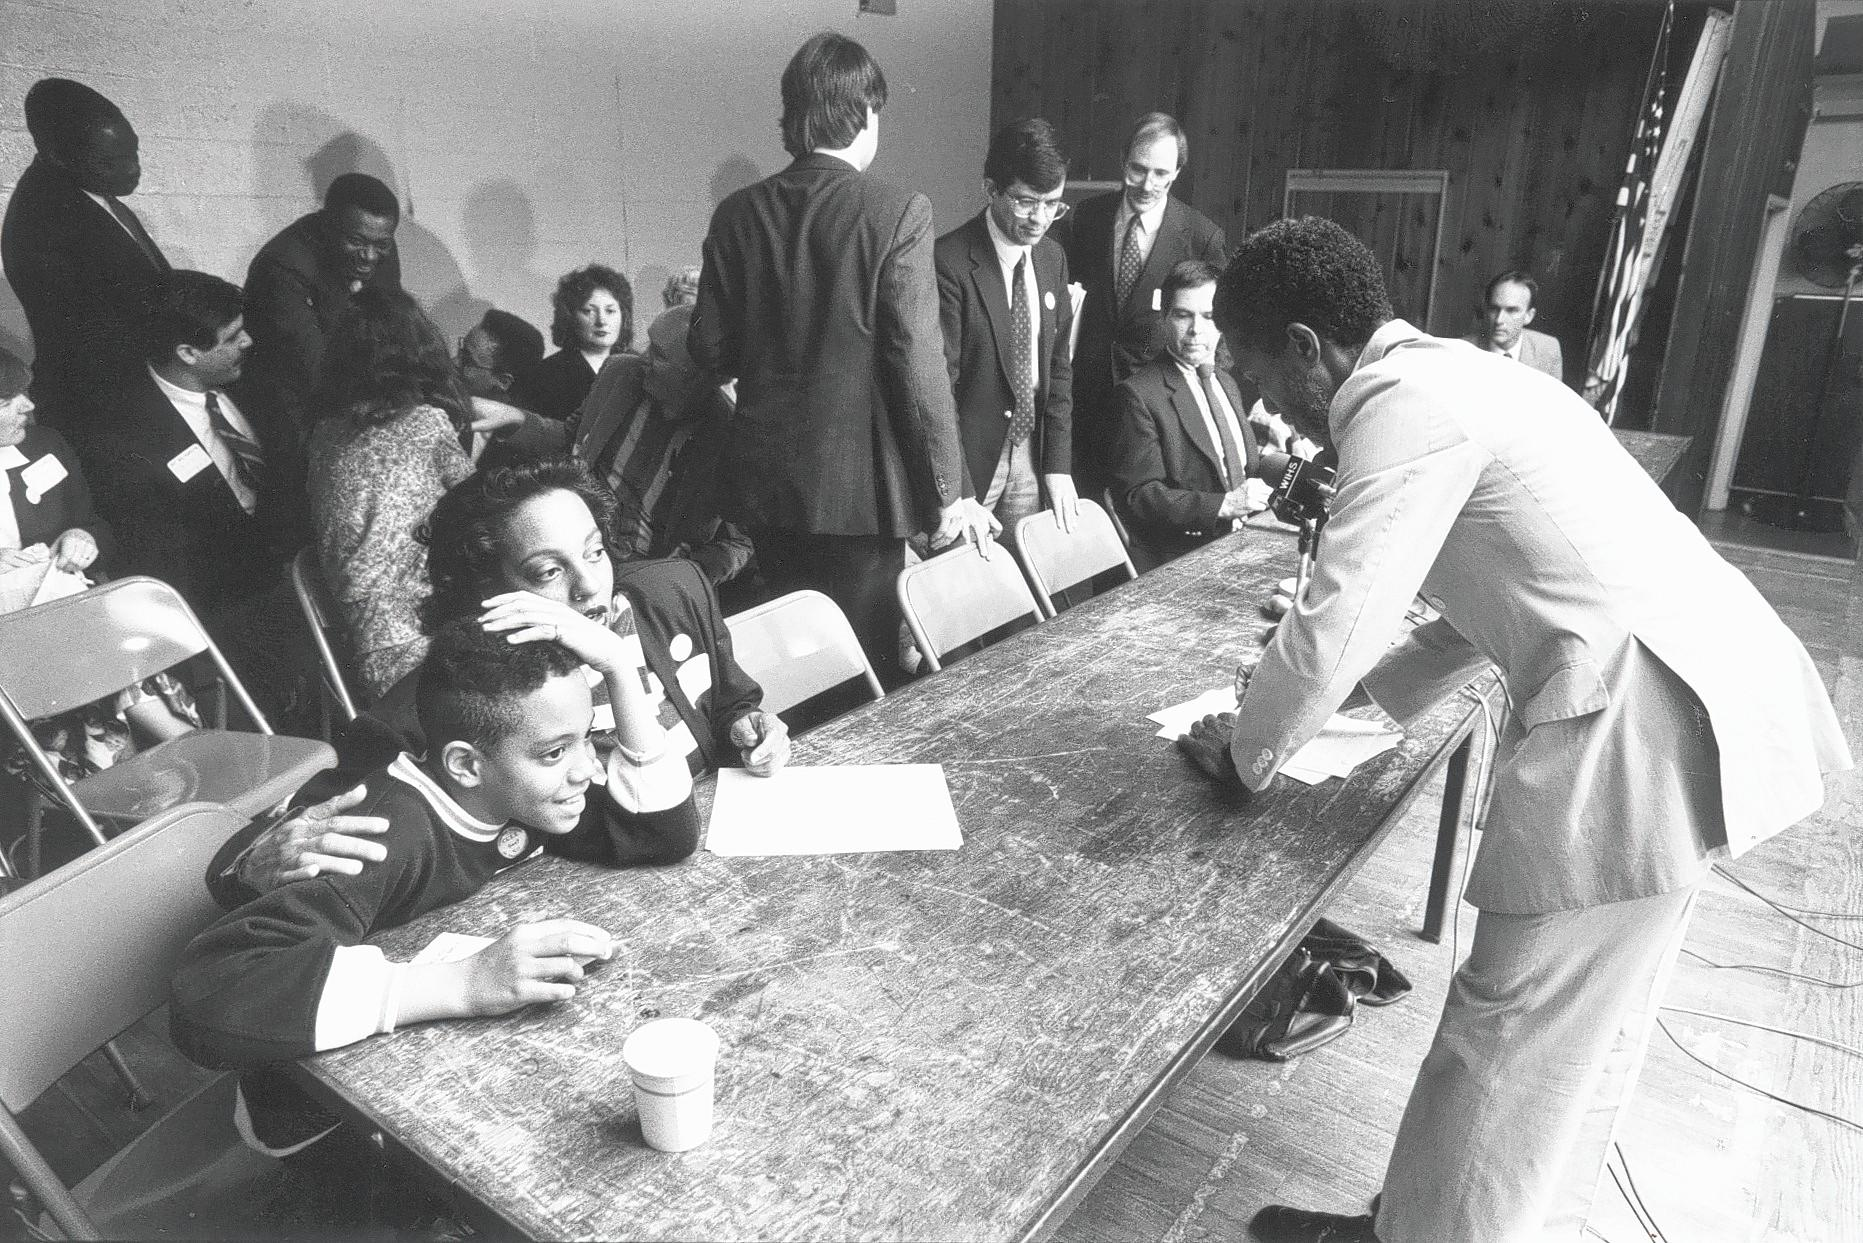 Elizabeth Sheff tries to ally the anxiety felt by her son Milo, 10, before the start of a press conference on April 27, 1989, announcing a desegregation lawsuit against the state. At right is UConn law professor John C. Brittain, one of several lawyers who argued their case.